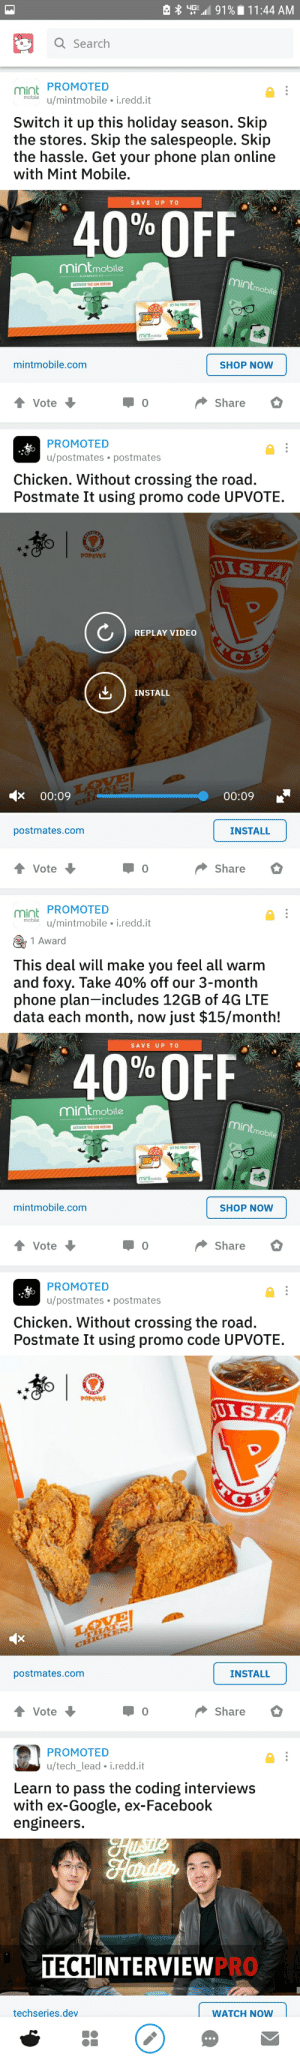 Thanks Reddit! I really enjoy seeing 5 consecutive ads: A * 45  91% i 11:44 AM  Q Search  PROMOTED  mint  mobile  u/mintmobile • i.redd.it  Switch it up this holiday season. Skip  the stores. Skip the salespeople. Skip  the hassle. Get your phone plan online  with Mint Mobile.  SAVE UP TO  40% OFF  mintmobile  CLEVERNESS KIT  mintmobile  ACTIVATE THE SIM WITHIN  LET THE PRICE DROP!  mintmobile  mintmobile.com  SHOP NOW  Share  Vote  PROMOTED  u/postmates • postmates  Chicken. Without crossing the road.  Postmate It using promo code UPVOTE.  POPEYES  JUISIA  REPLAY VIDEO  INSTALL  LOVE  X 00:09 THA N.  CHI  00:09  postmates.com  INSTALL  Share  Vote  Mint PROMOTED  mobile  u/mintmobile • i.redd.it  1 Award  This deal will make you feel all warm  and foxy. Take 40% off our 3-month  phone plan-includes 12GB of 4G LTE  data each month, now just $15/month!  SAVE UP TO  40% FF  mintmobile  CLEVERNESS KIT  mintmobile  ACTIVATE THE SIM WITHIN  LET THE PRICE DROP!  ELE  mintmobile  mintmobile.com  SHOP NOW  Share  Vote  PROMOTED  u/postmates • postmates  Chicken. Without crossing the road.  Postmate It using promo code UPVOTE.  POPEYES  UISIA  GES  LOVE  THAT-  CHICK EN!  postmates.com  INSTALL  Share  Vote  PROMOTED  u/tech_lead • i.redd.it  Learn to pass the coding interviews  with ex-Google, ex-Facebook  engineers.  HTSLE  Hander  TECHINTERVIEWPRO  techseries.dev  WATCH NOW  •.. Thanks Reddit! I really enjoy seeing 5 consecutive ads